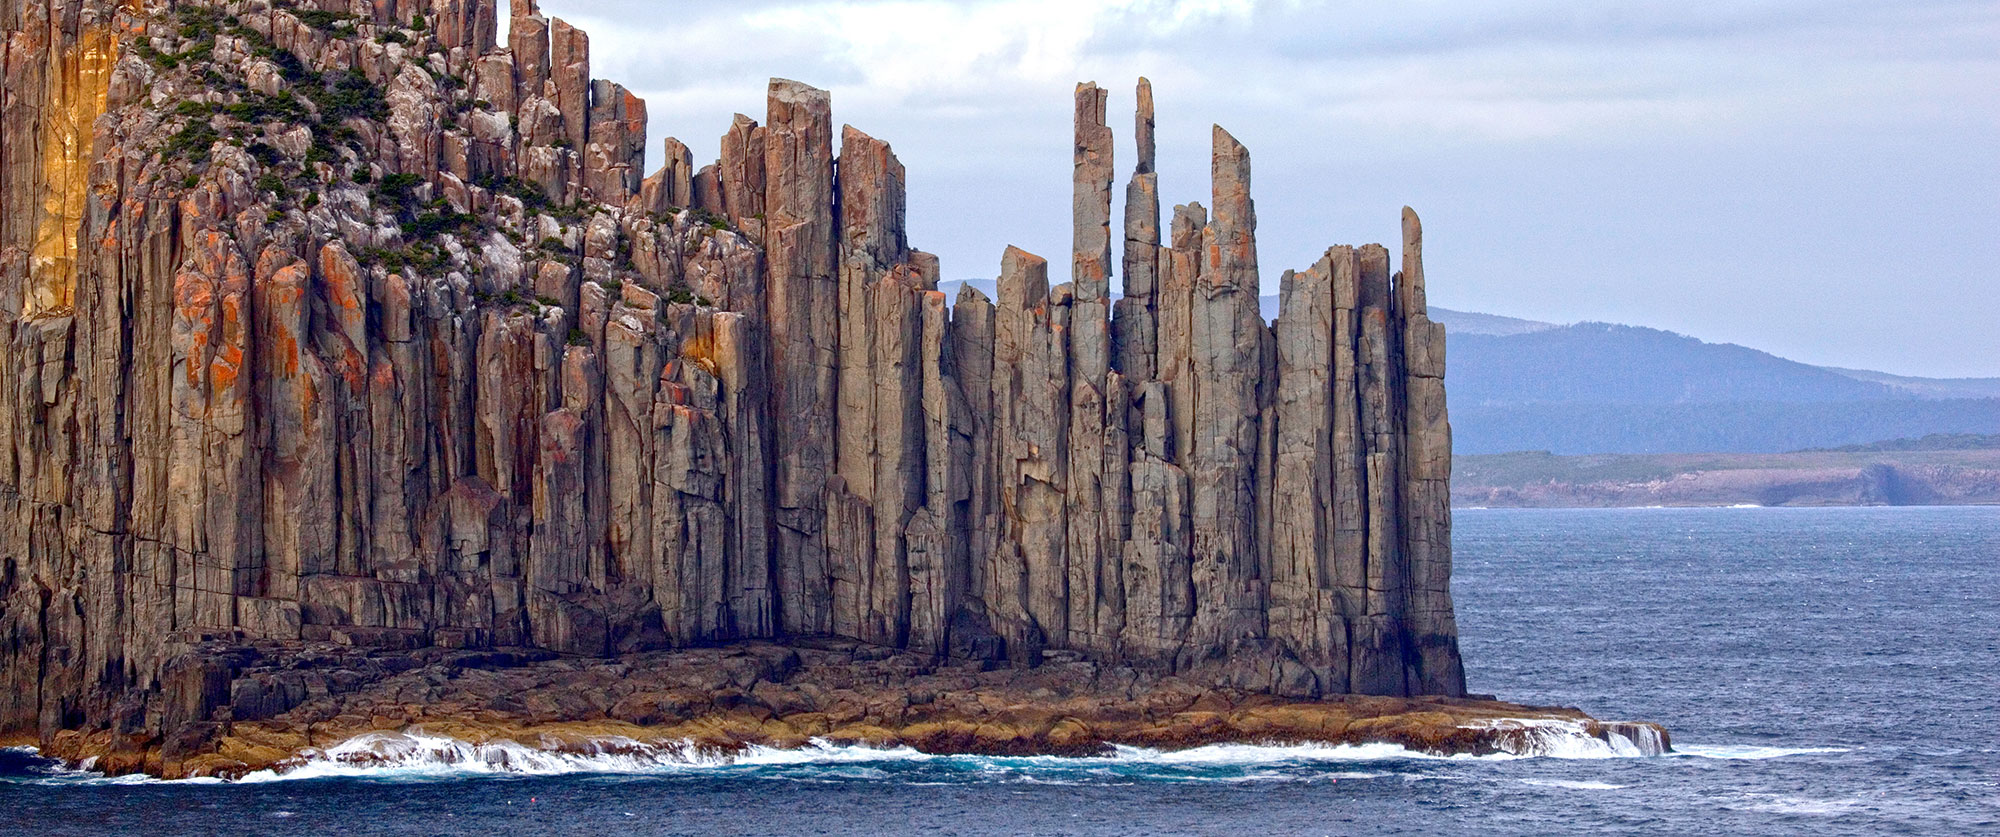 Tasmania, Australia Vacation: Ultimate Wildlife Experience